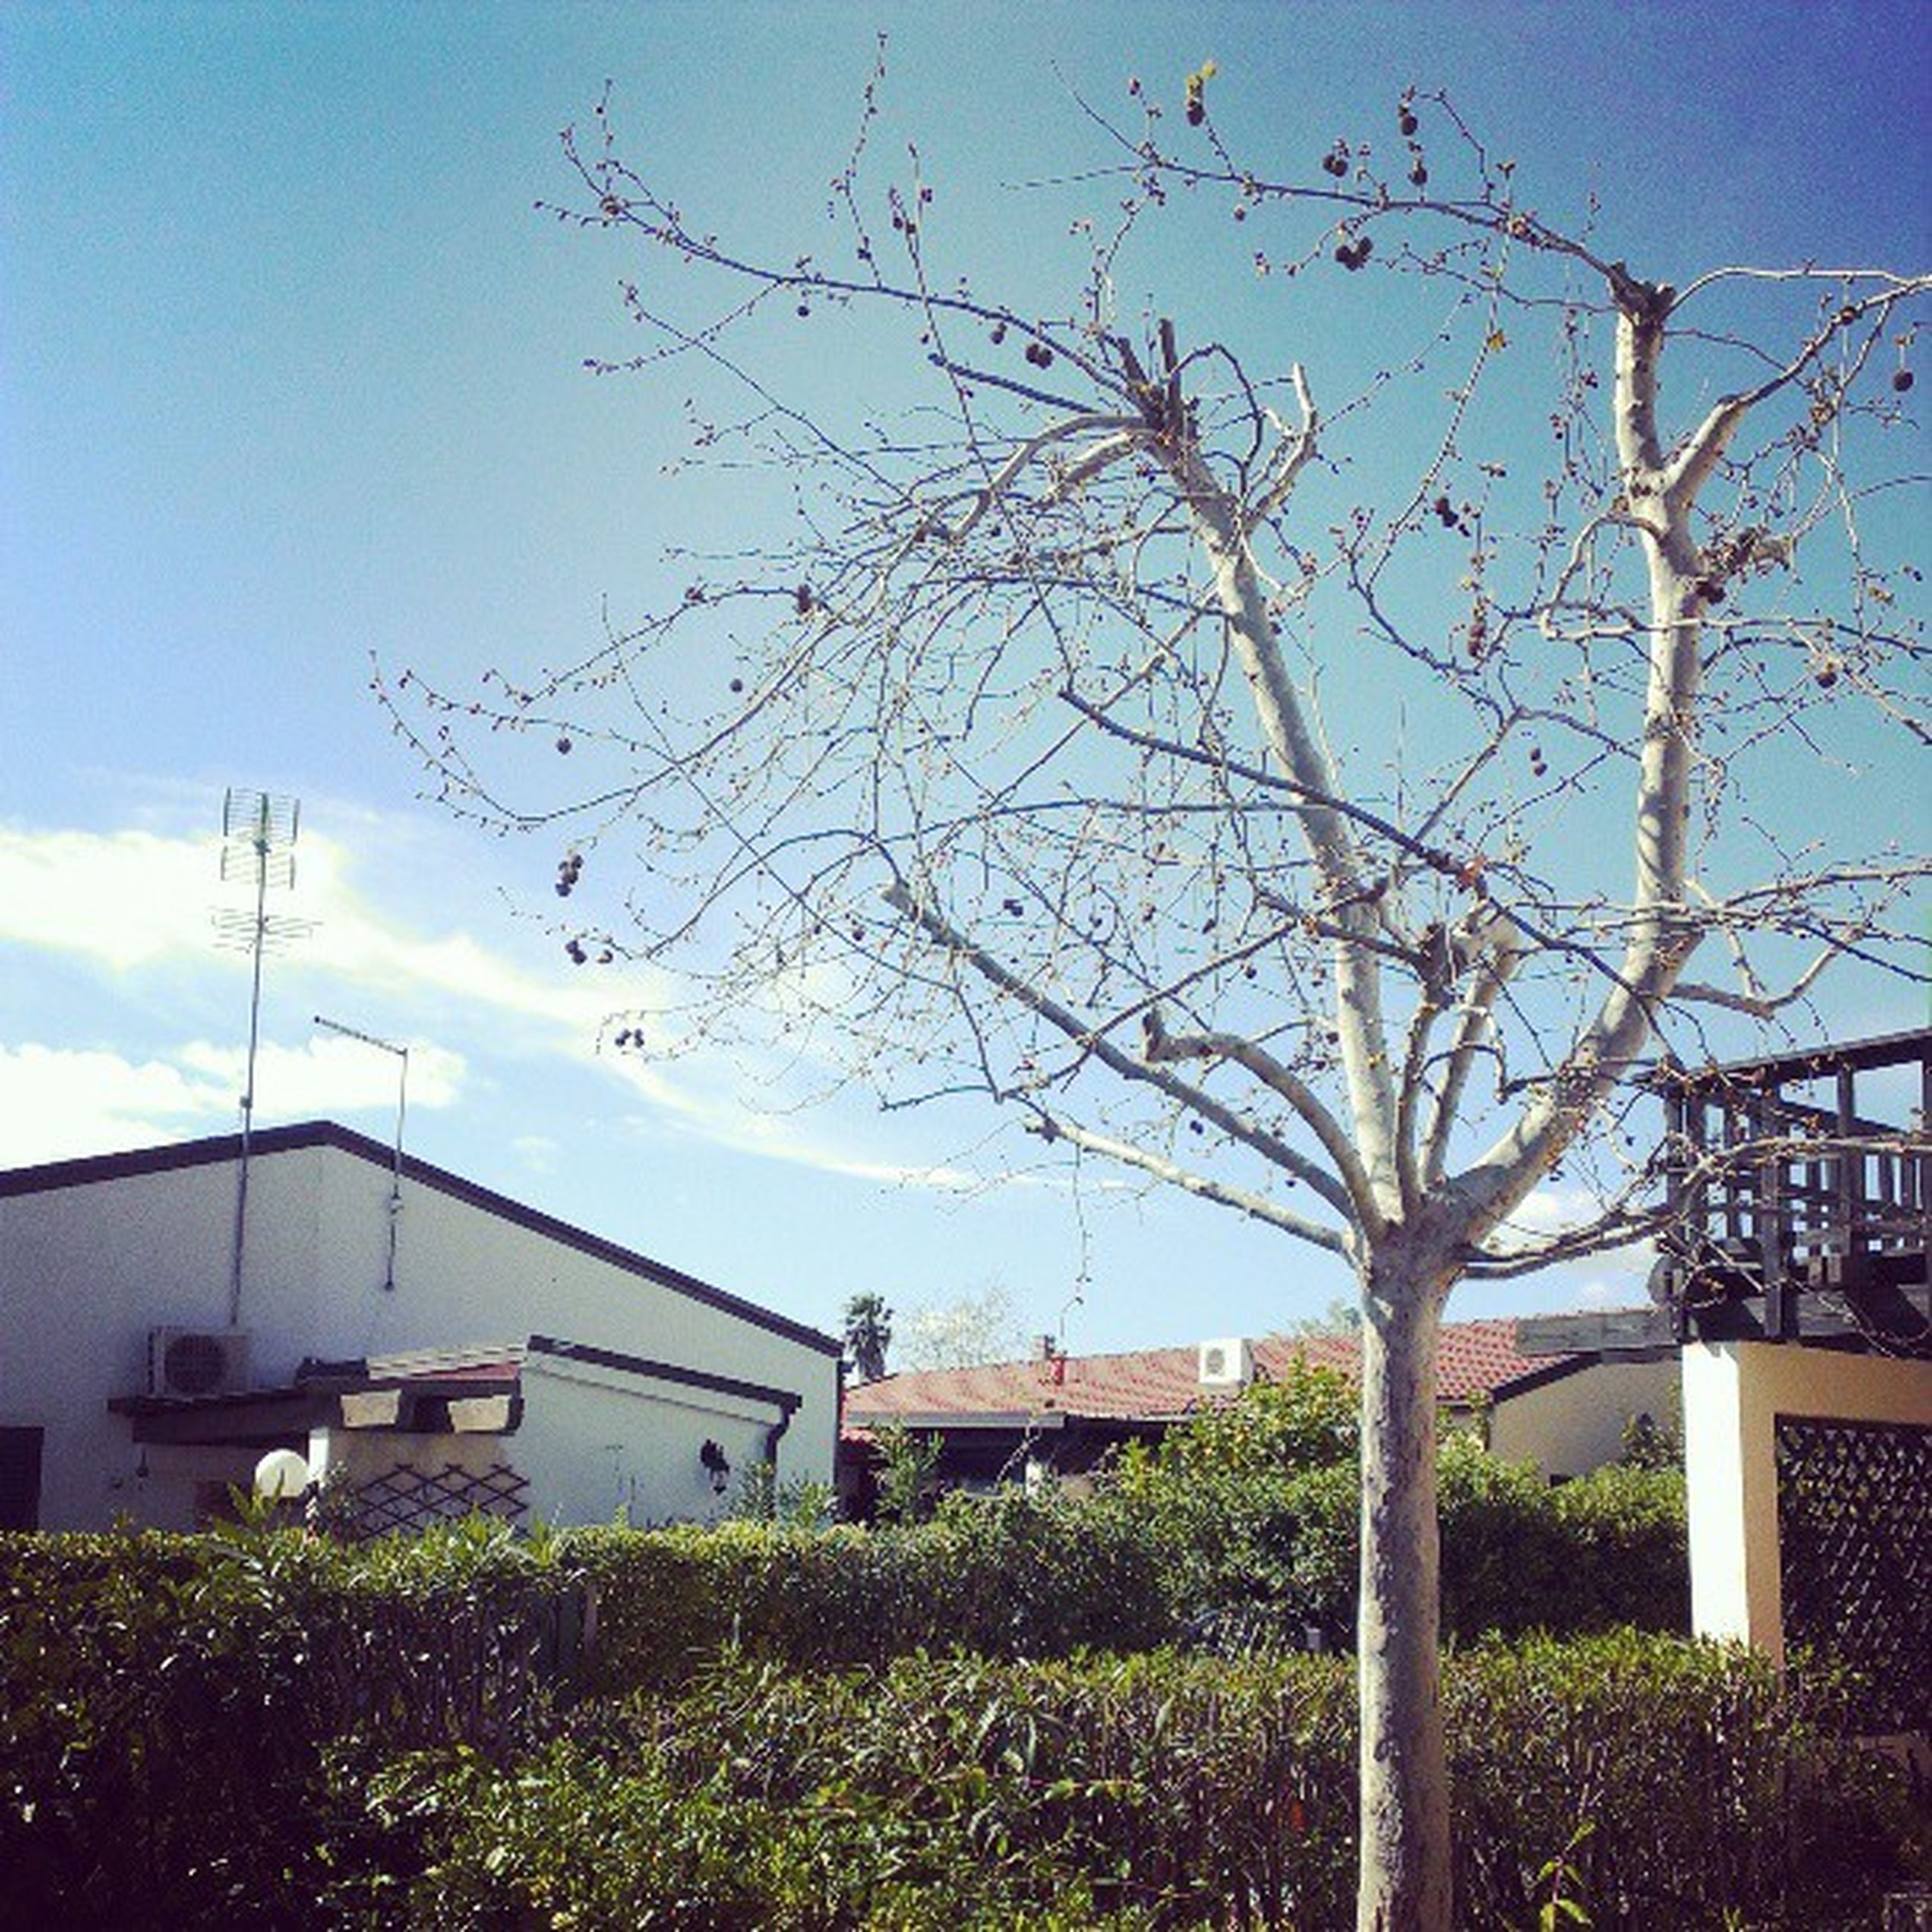 building exterior, built structure, architecture, tree, sky, bare tree, house, branch, residential structure, growth, blue, nature, residential building, sunlight, grass, day, low angle view, outdoors, no people, field